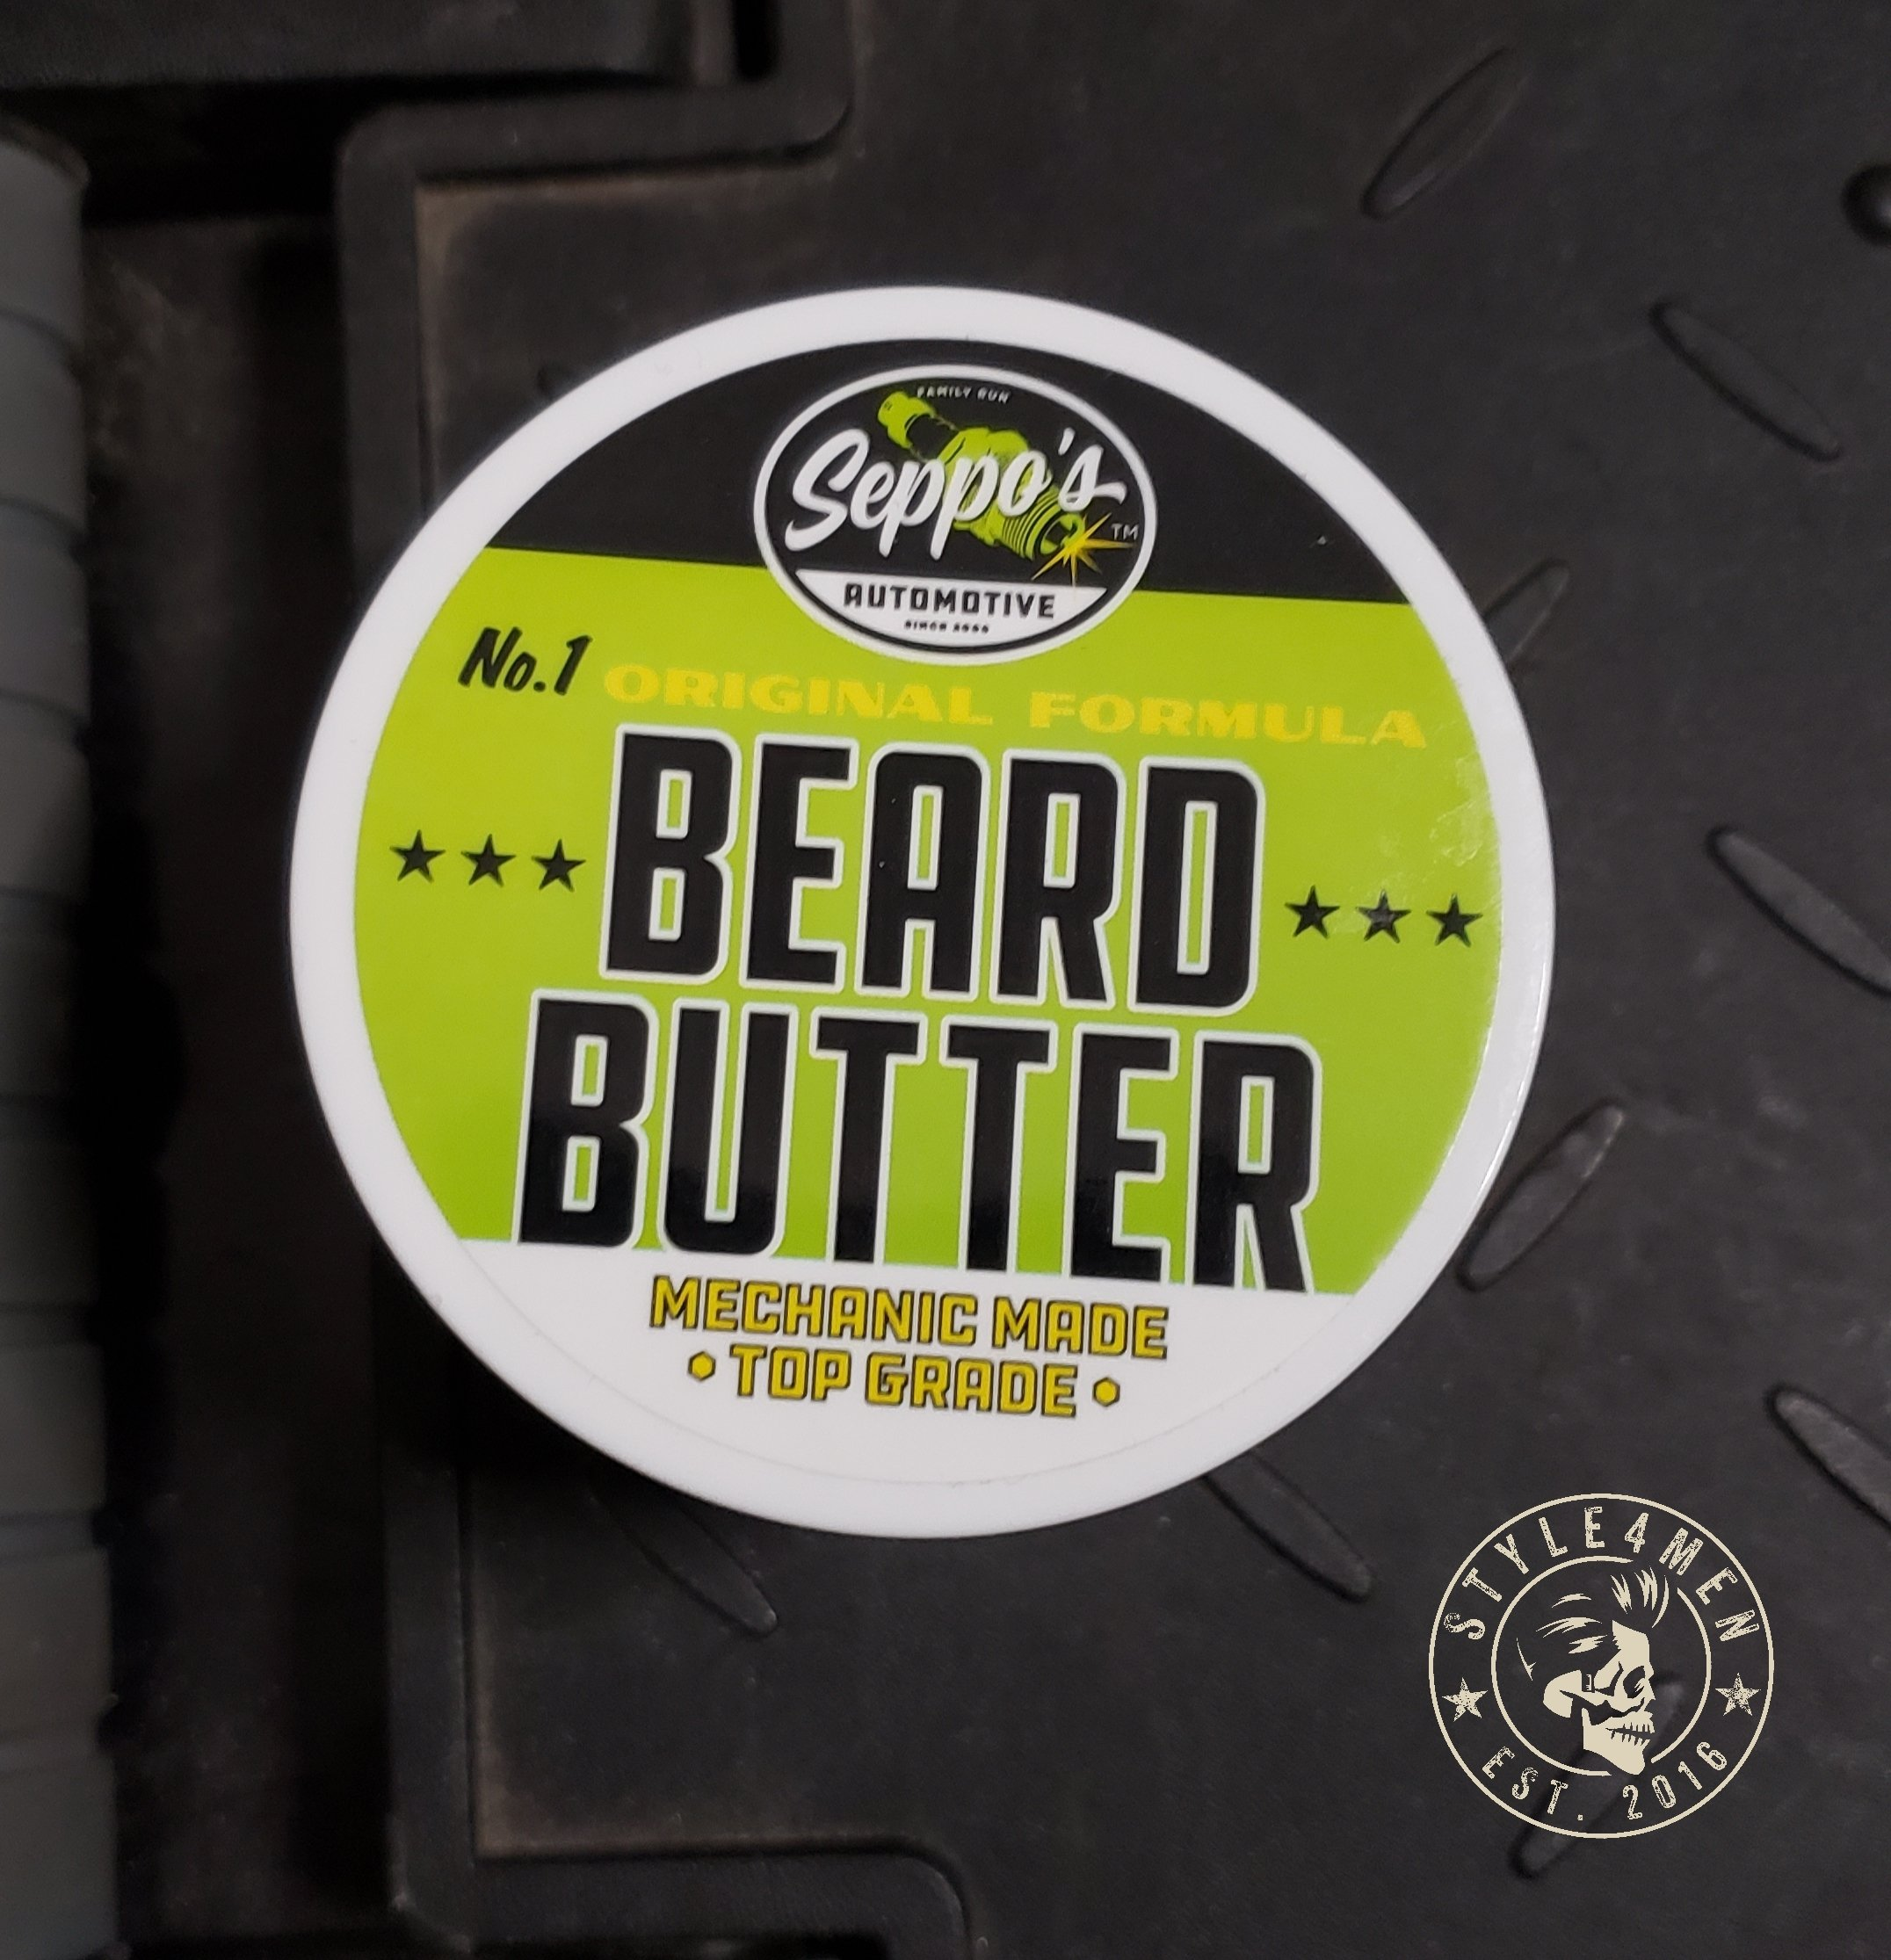 Seppo's Beard Butter – like nothing else out there!